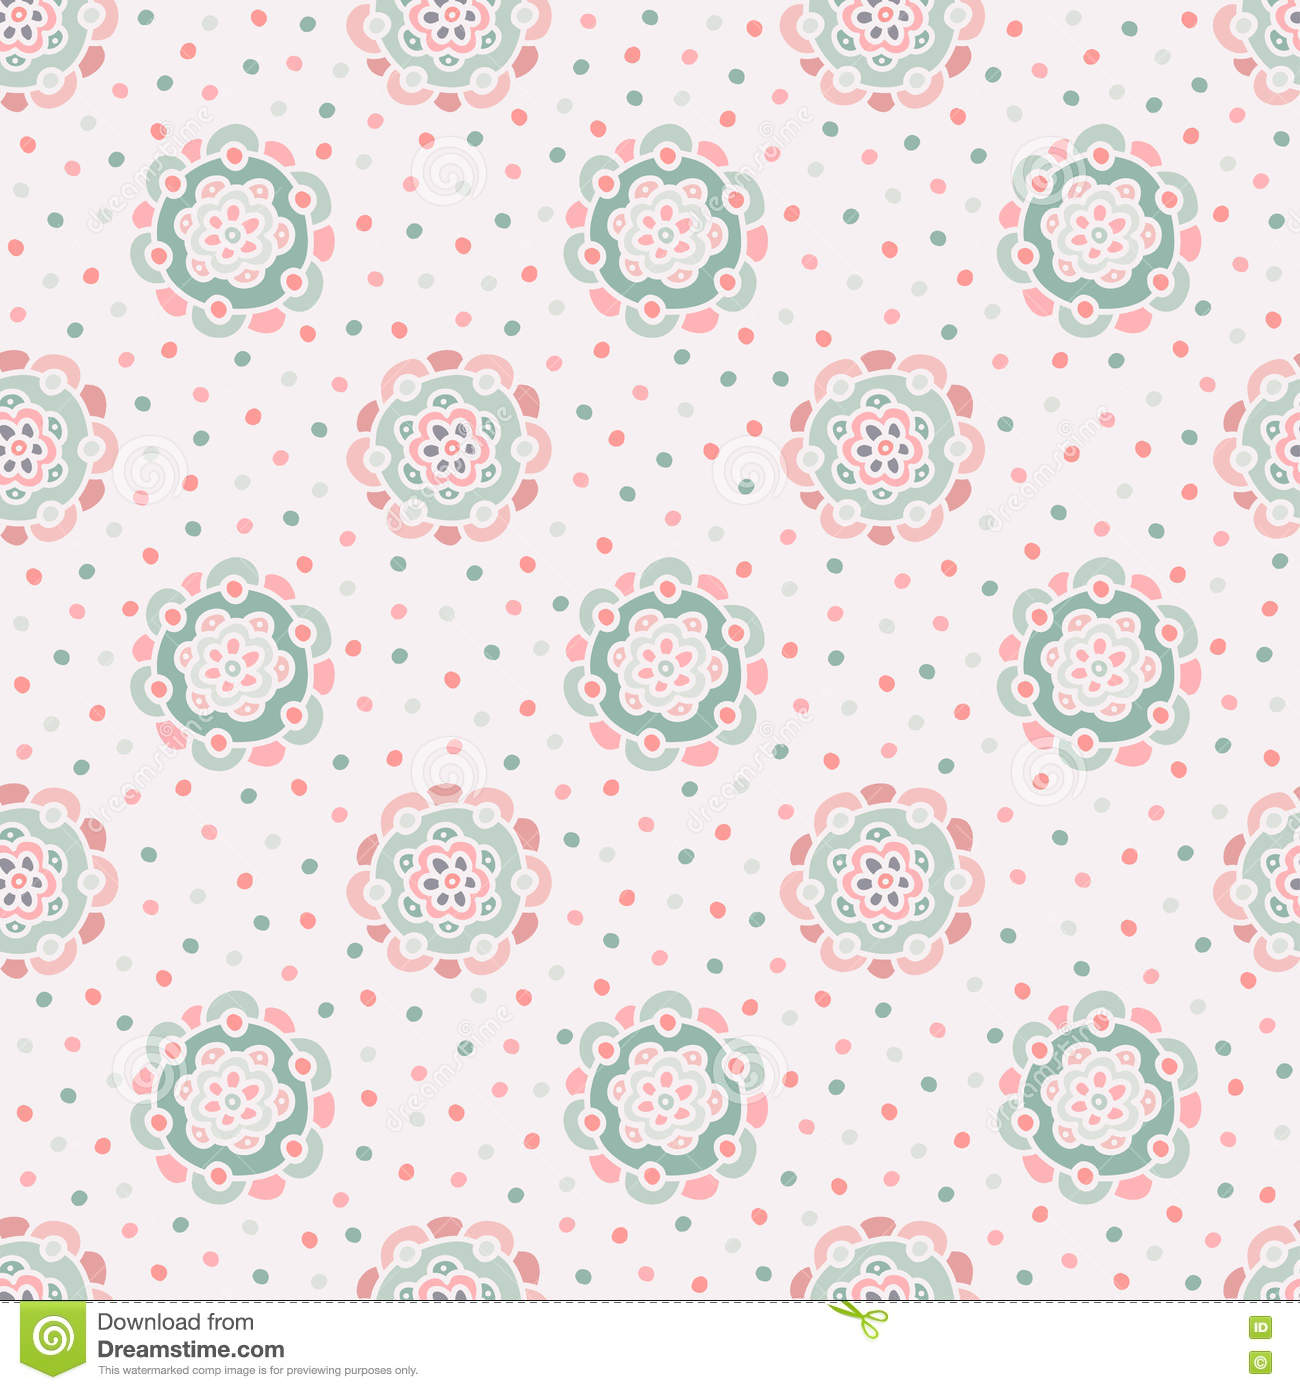 Doodle Floral Pattern Seamless Boho Background Beautiful Pastel